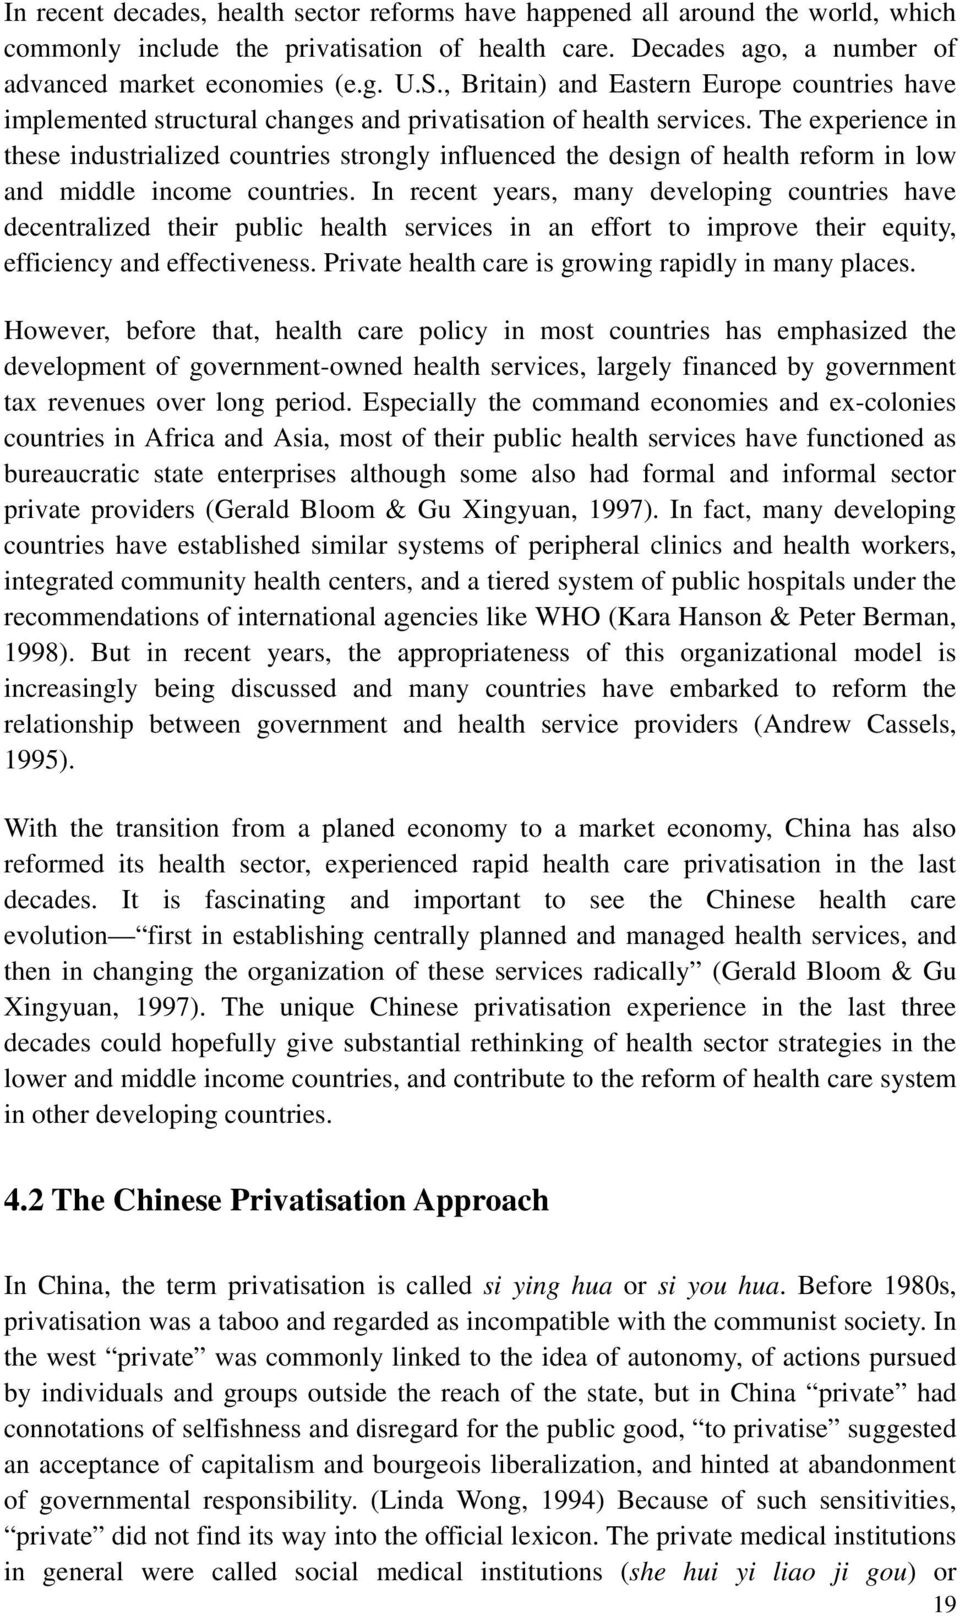 The experience in these industrialized countries strongly influenced the design of health reform in low and middle income countries.